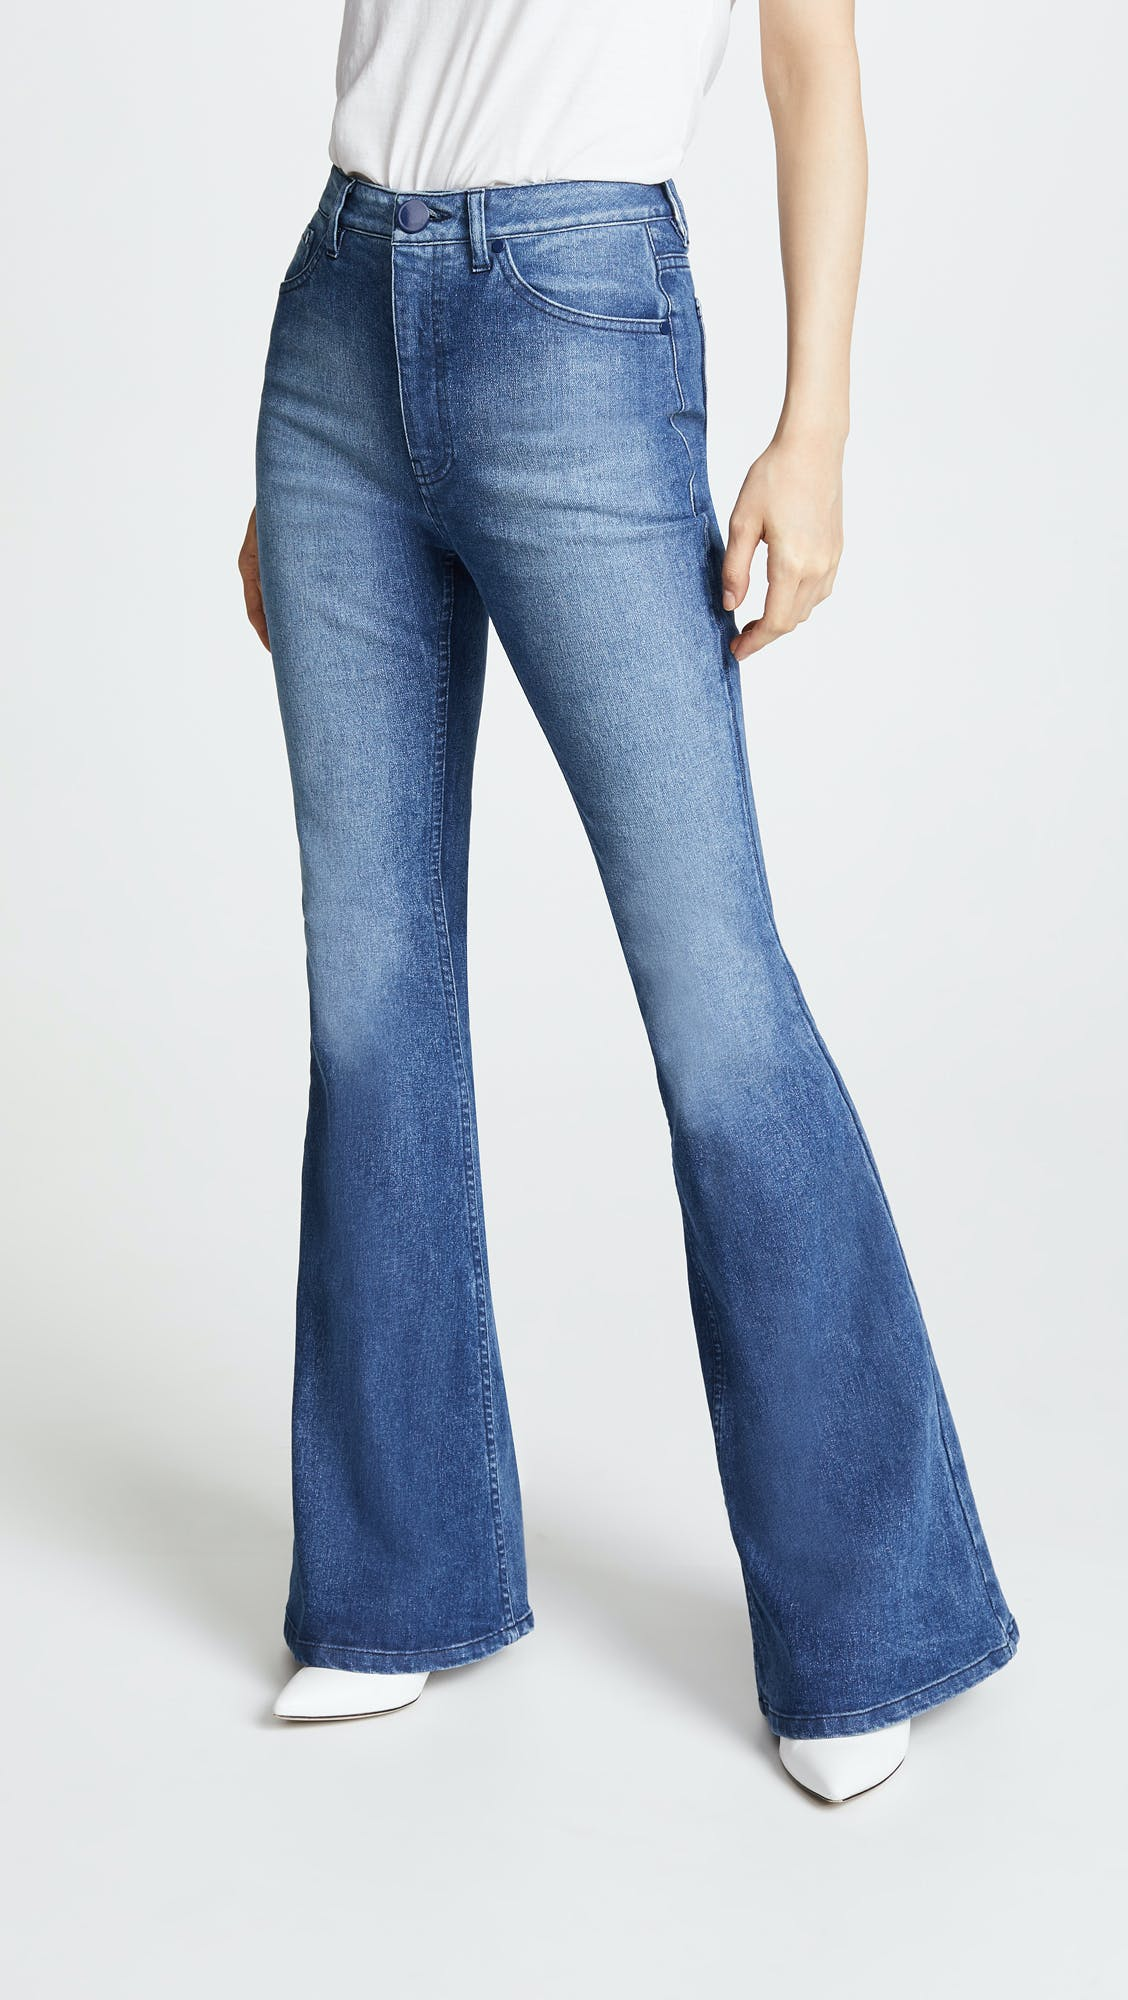 brandon maxwell, flared jeans, bell bottom jeans, flared jeans